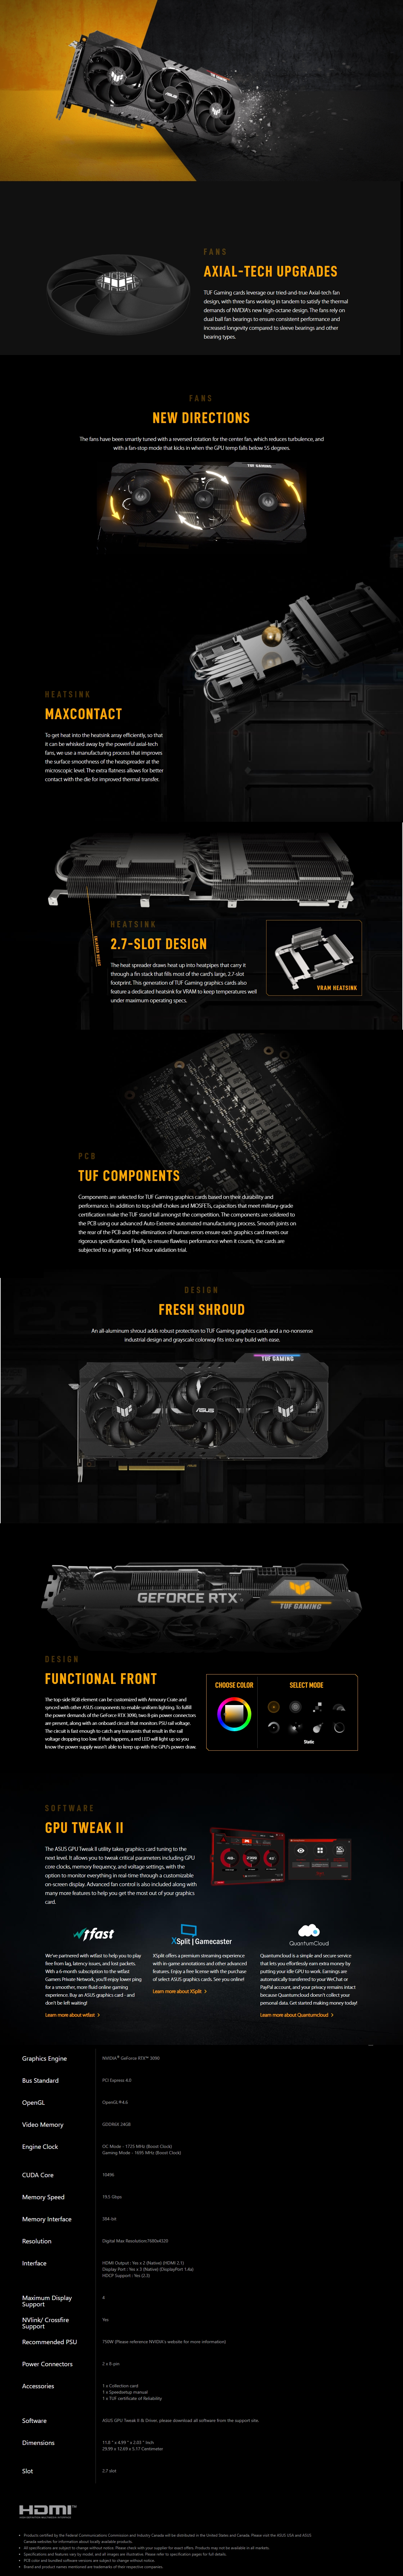 A large marketing image providing additional information about the product ASUS GeForce RTX 3090 TUF Gaming 24GB GDDR6X - Additional alt info not provided